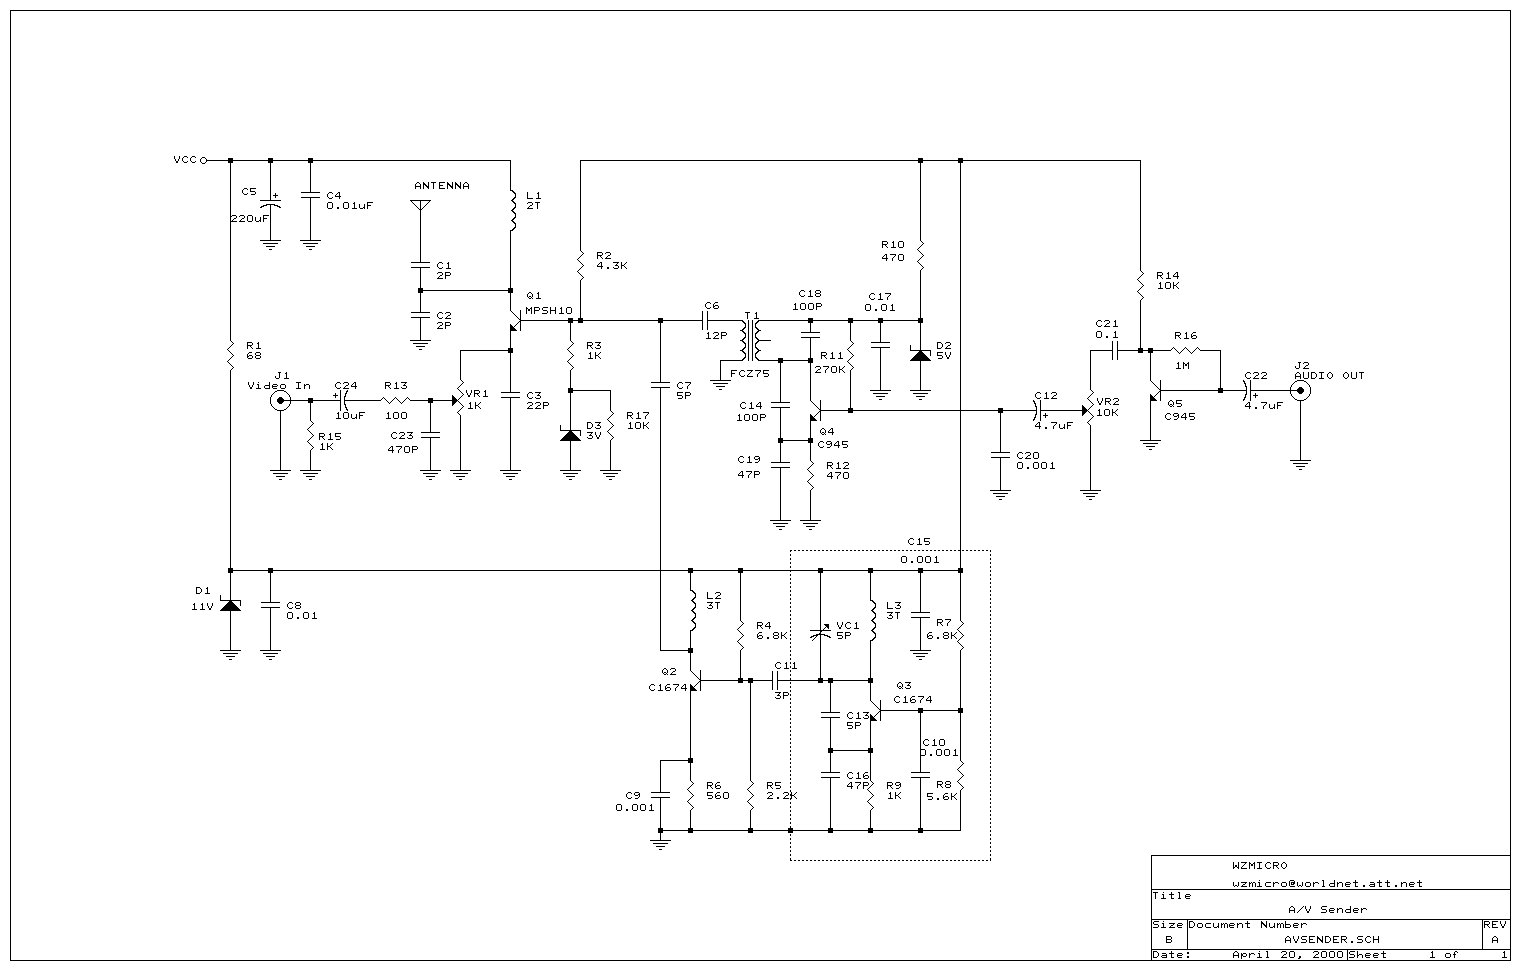 Audio Video Transmitter Schematic - Wiring Diagram Show on wifi transmitter schematic, vlf transmitter schematic, rf transmitter schematic, cellular transmitter schematic, am transmitter schematic, bluetooth transmitter schematic, television transmitter schematic, hf transmitter schematic, shortwave transmitter schematic, 900 mhz transmitter schematic, elf transmitter schematic, tv transmitter schematic, cw transmitter schematic, radio transmitter schematic, fm transmitter schematic,